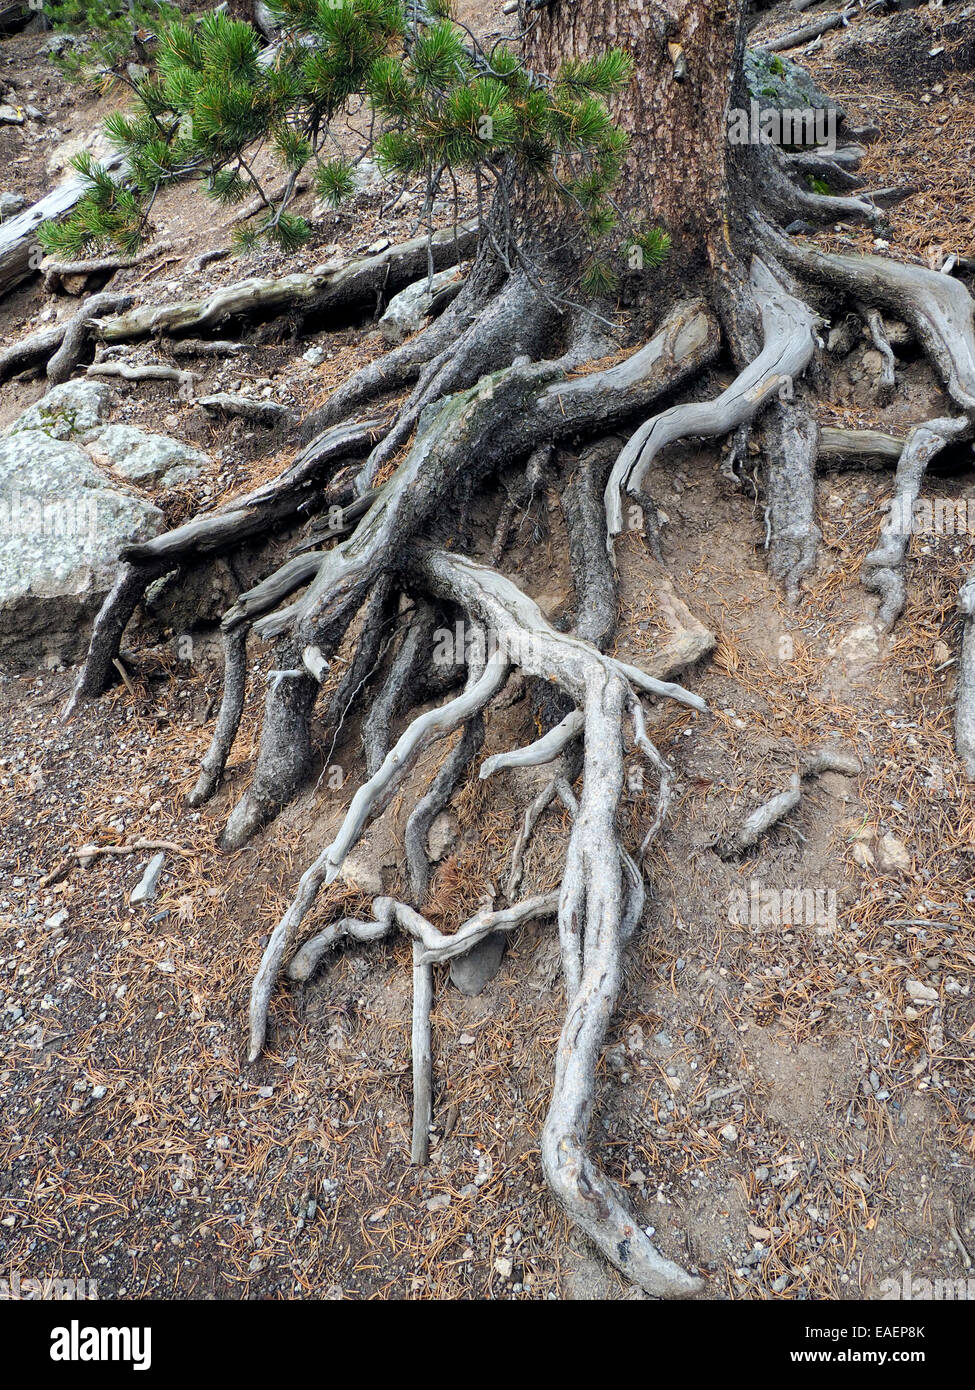 Tangle of Exposed Tree Roots - Stock Image